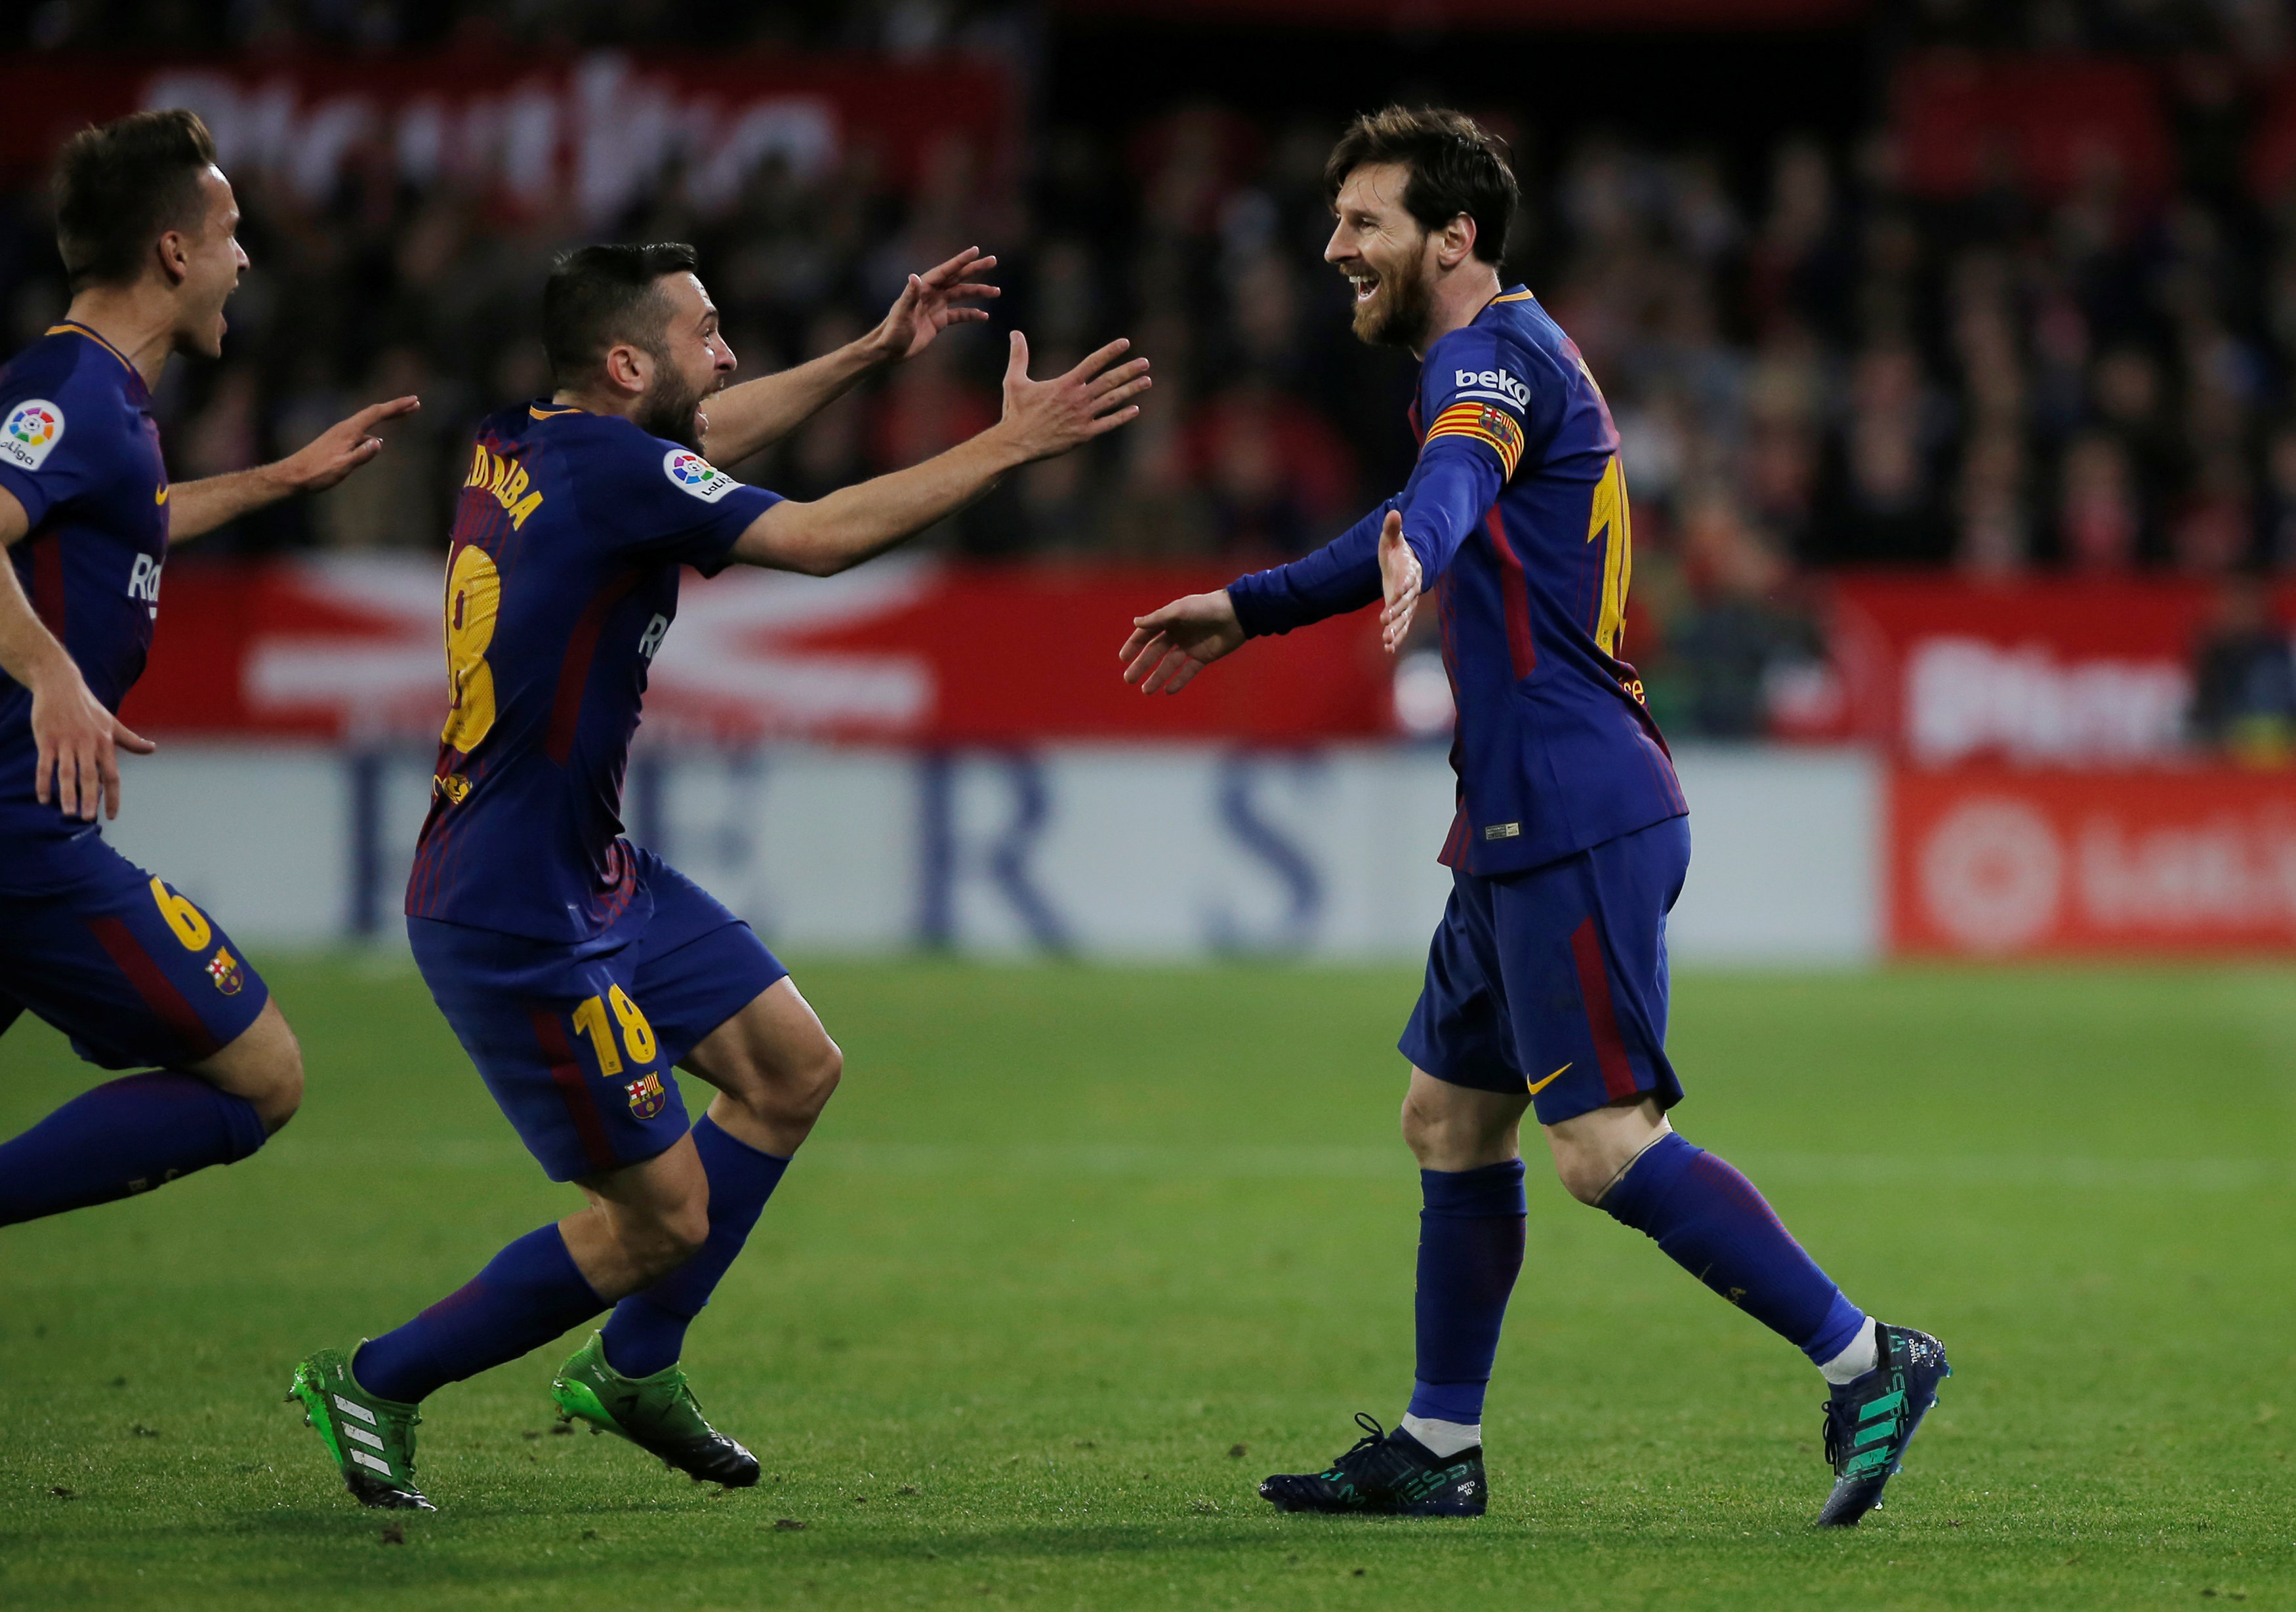 Football: 'Decisive' Messi proves worth to Barca